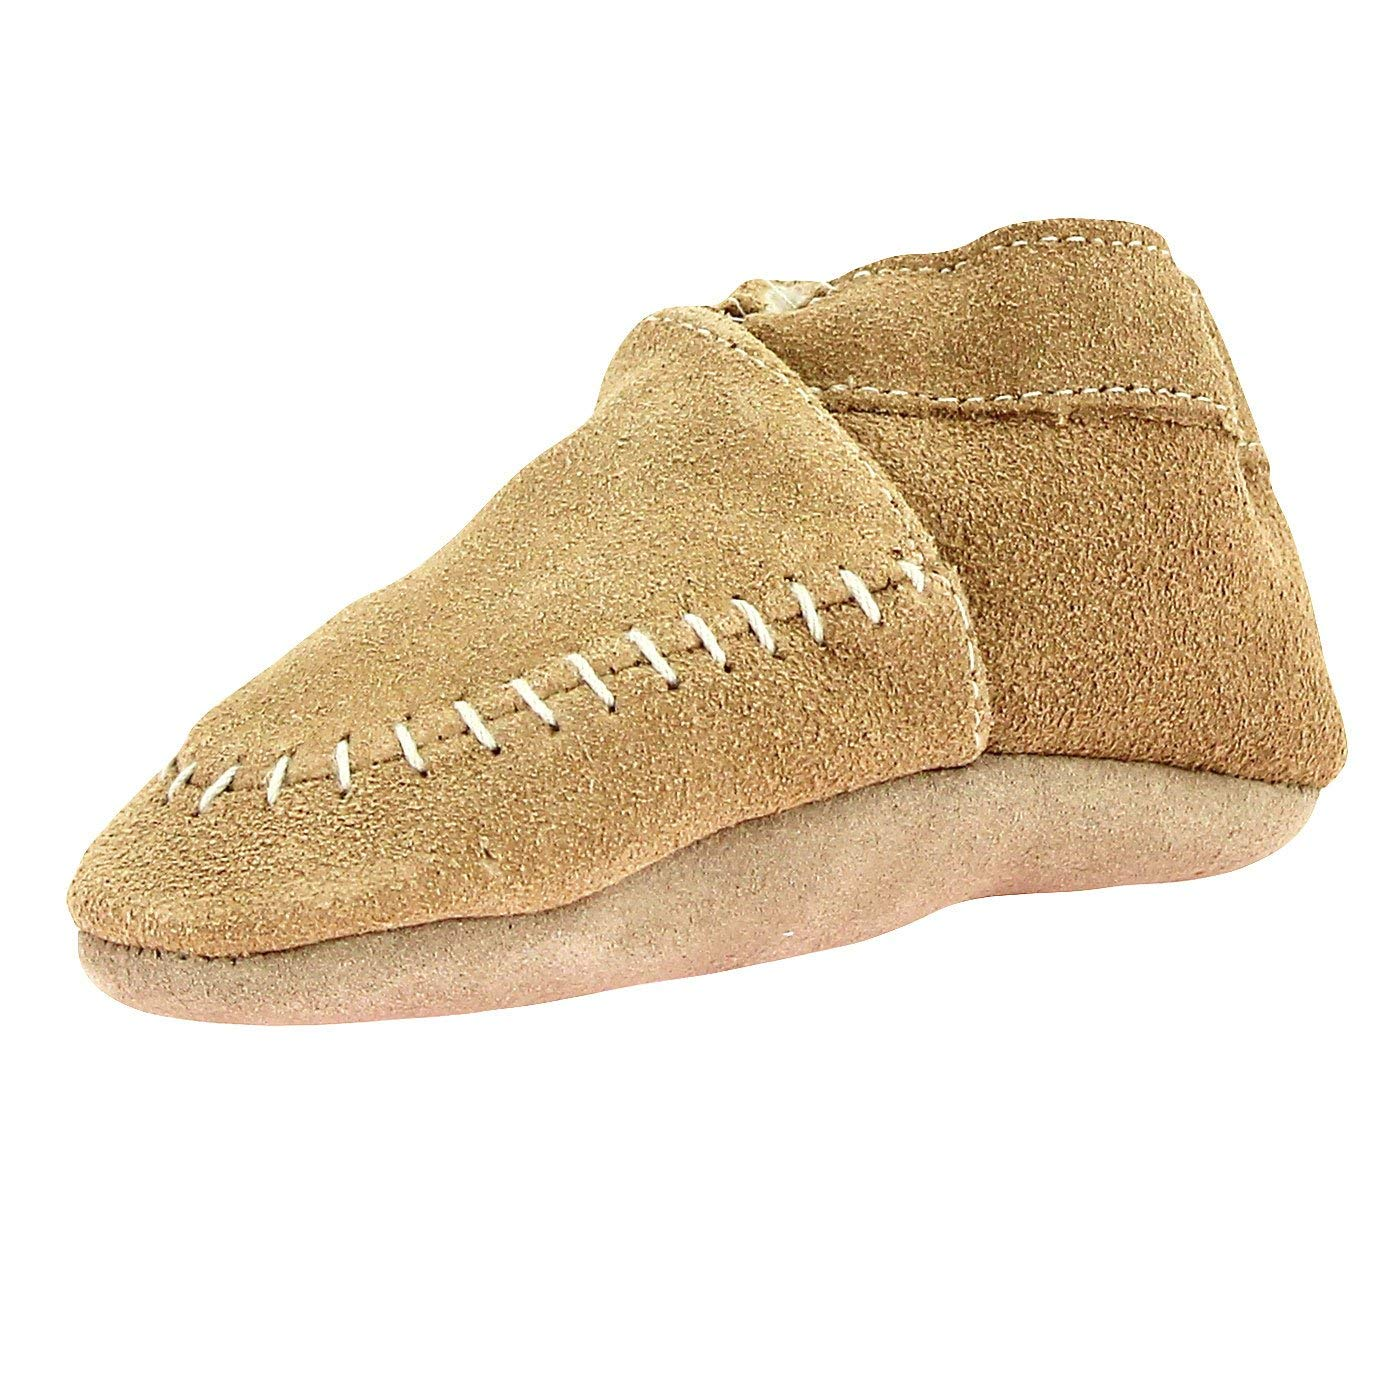 6f962d2bcf7 Get Quotations · Robeez Unisex Boy or Girl Beige Suede Moccasin Crib Shoes  With Sherpa Lining